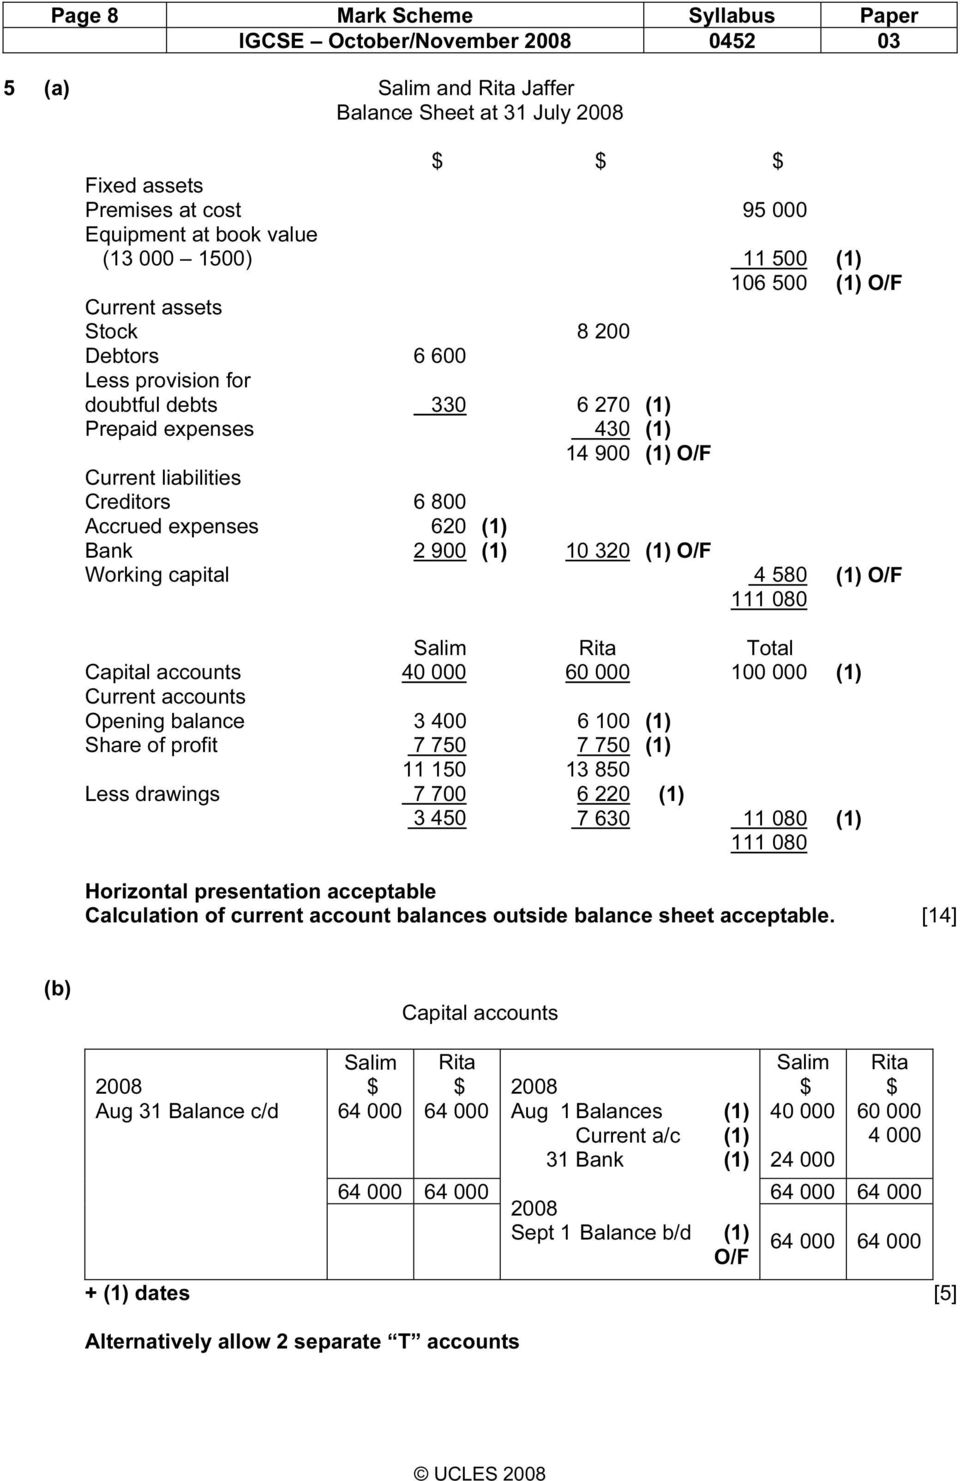 Mark scheme for the octobernovember 2008 question paper 0452 expenses 620 1 bank 2 900 1 10 320 1 9 page 9 mark scheme fandeluxe Choice Image